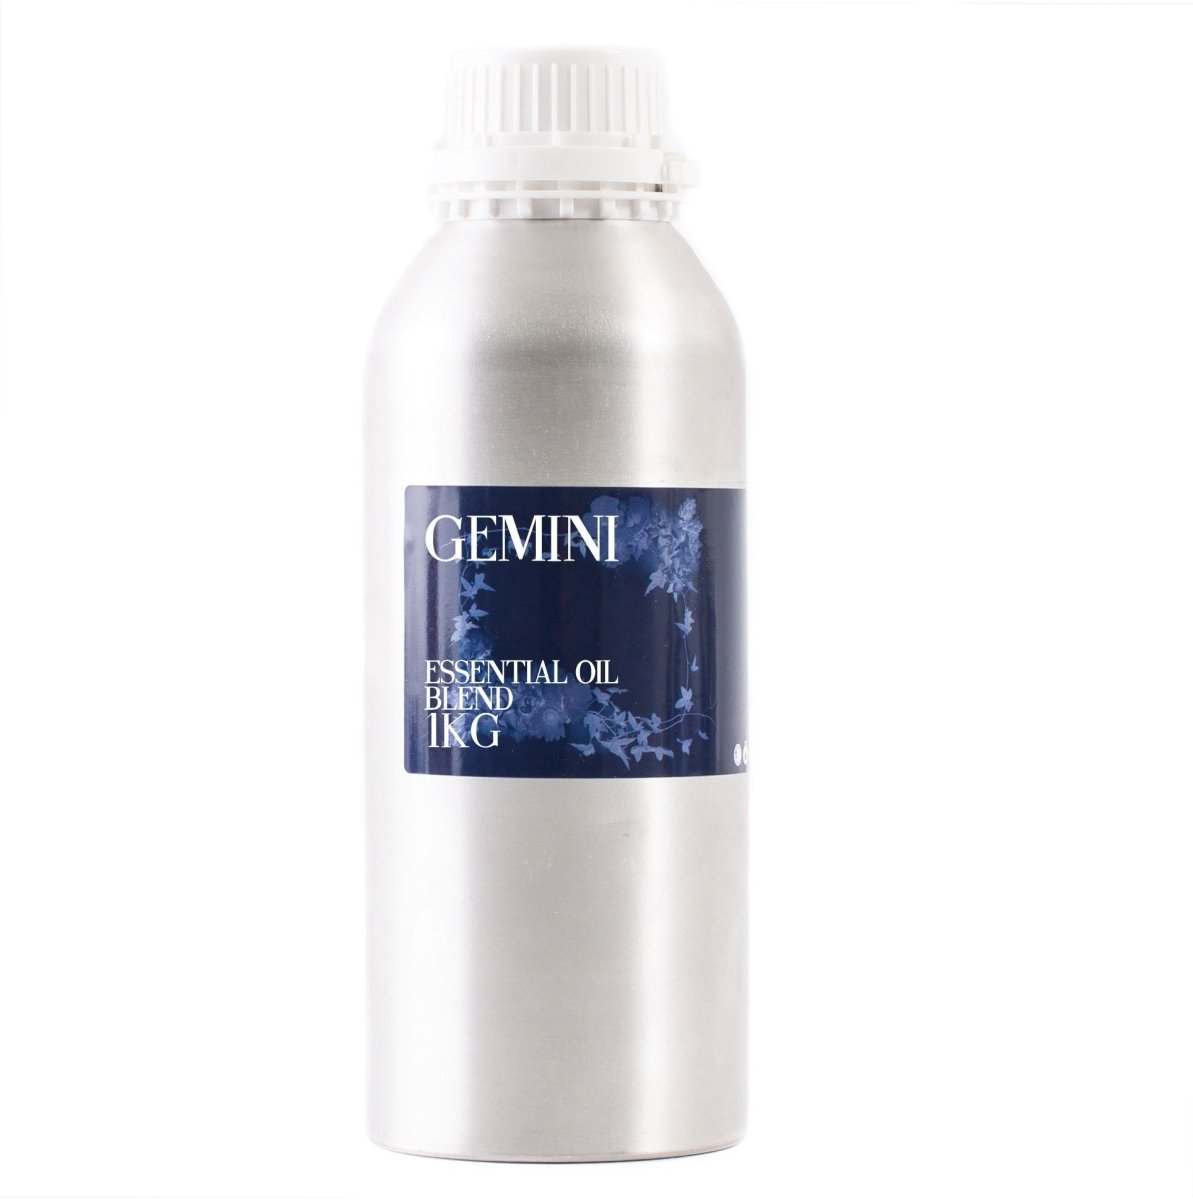 Gemini - Zodiac Sign Astrology Essential Oil Blend - Mystic Moments UK